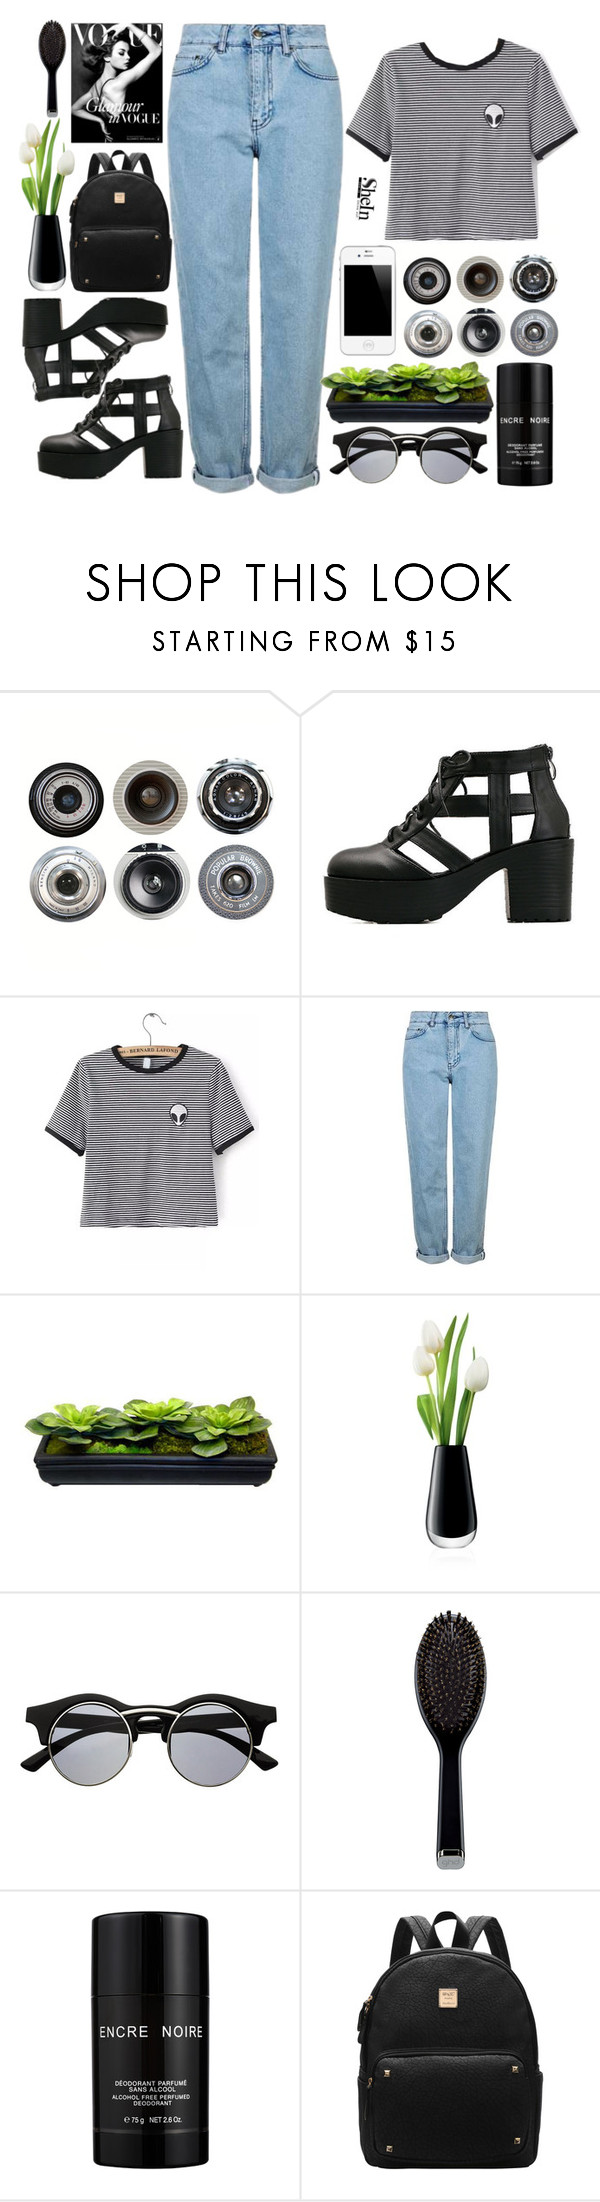 """""""#SheIn"""" by credentovideos ❤ liked on Polyvore featuring Ella Doran, WithChic, Topshop, LSA International, Retrò, GHD and Lalique"""